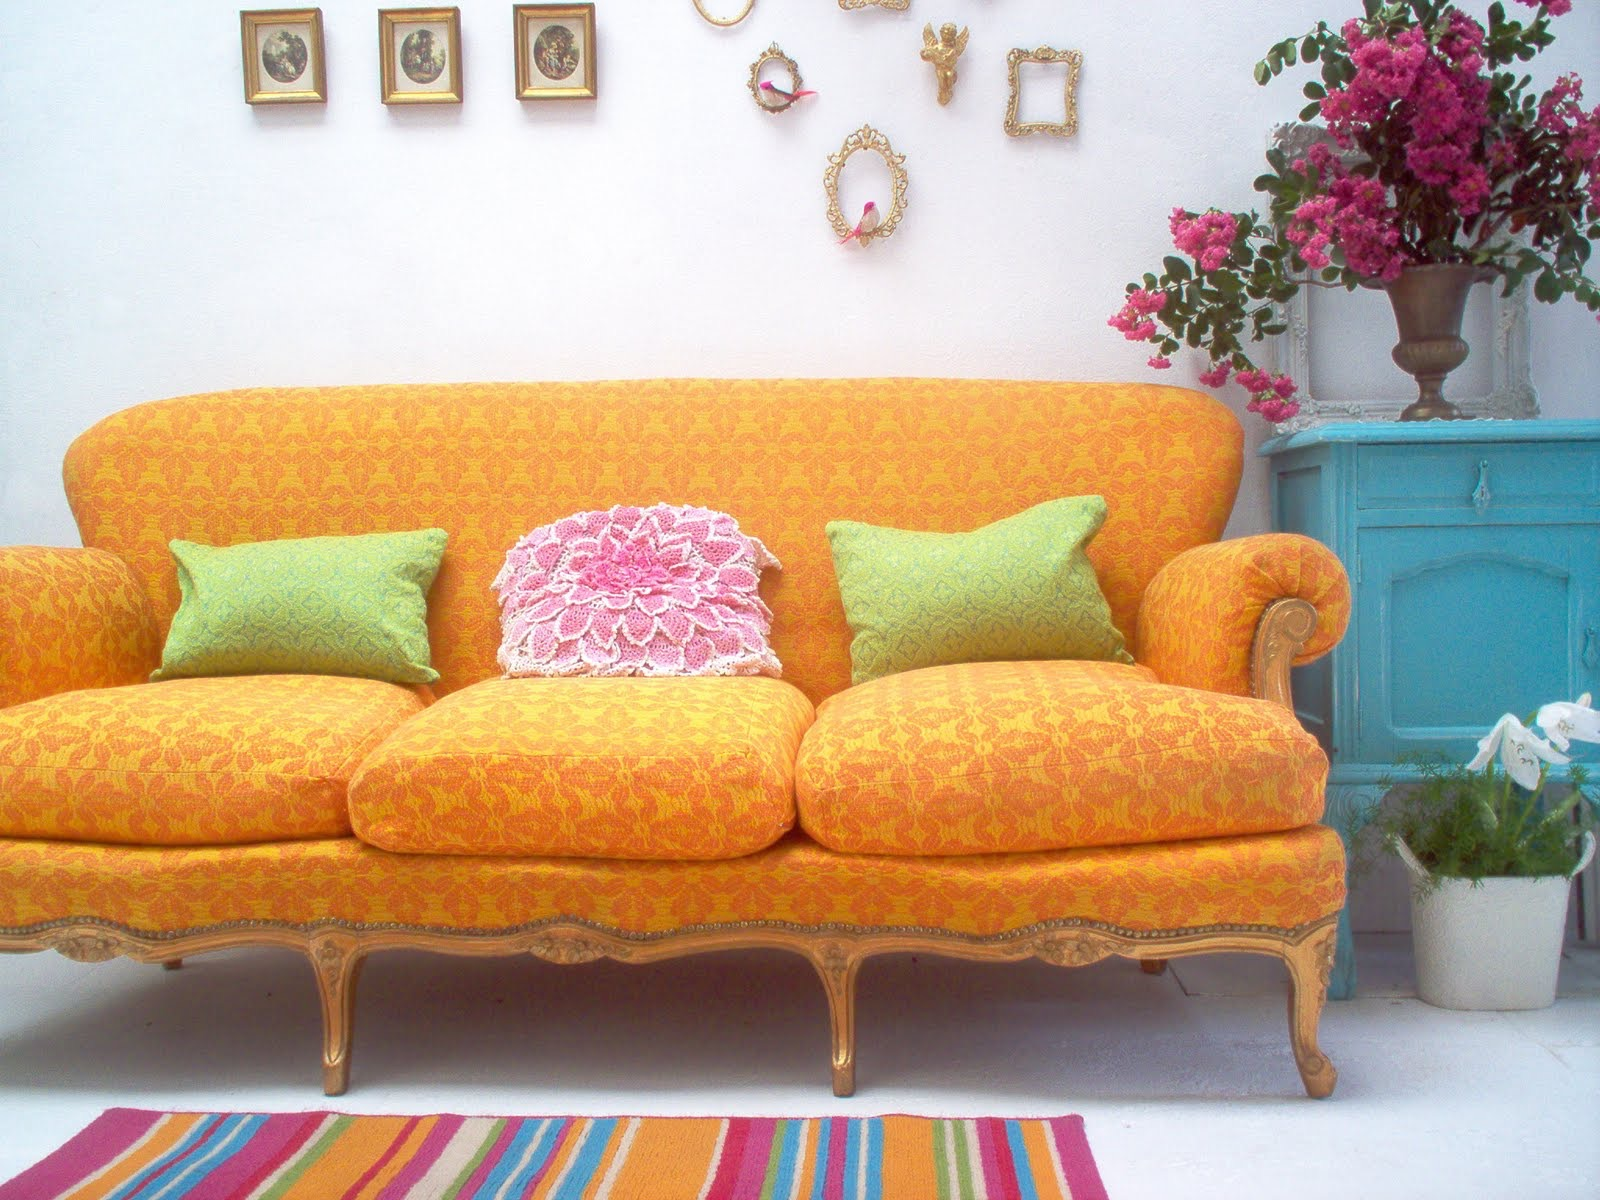 Cozy moroccan living room chair furniture 13583 gallery for Moroccan living room furniture 02